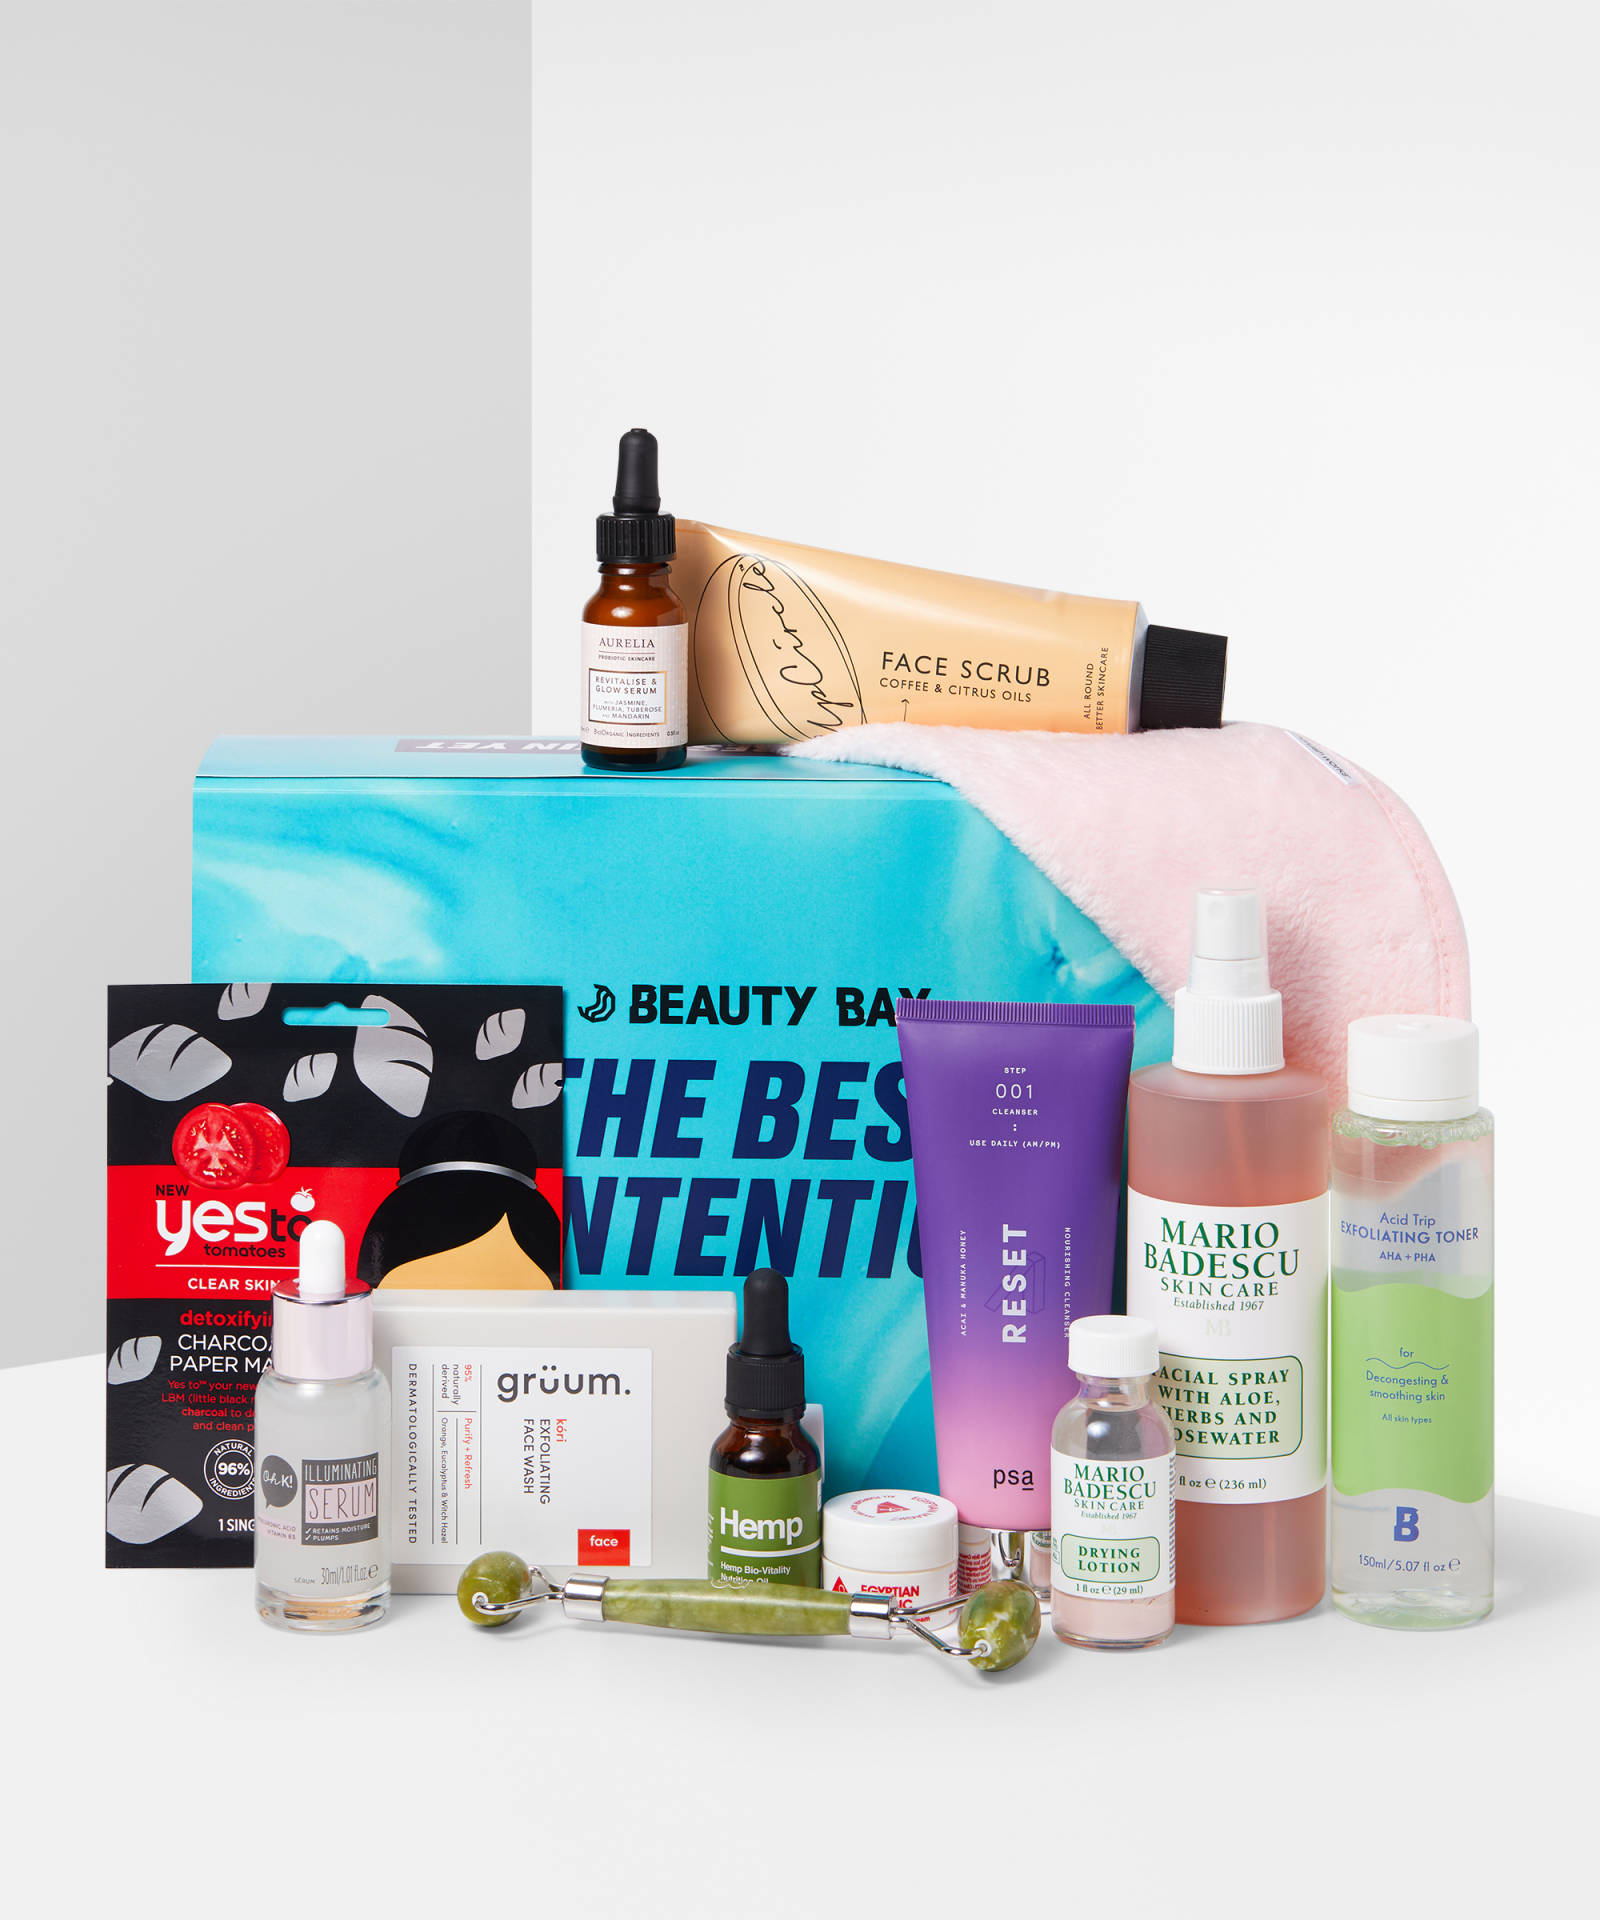 Beauty Bay The Best SKINtentions Beauty Box